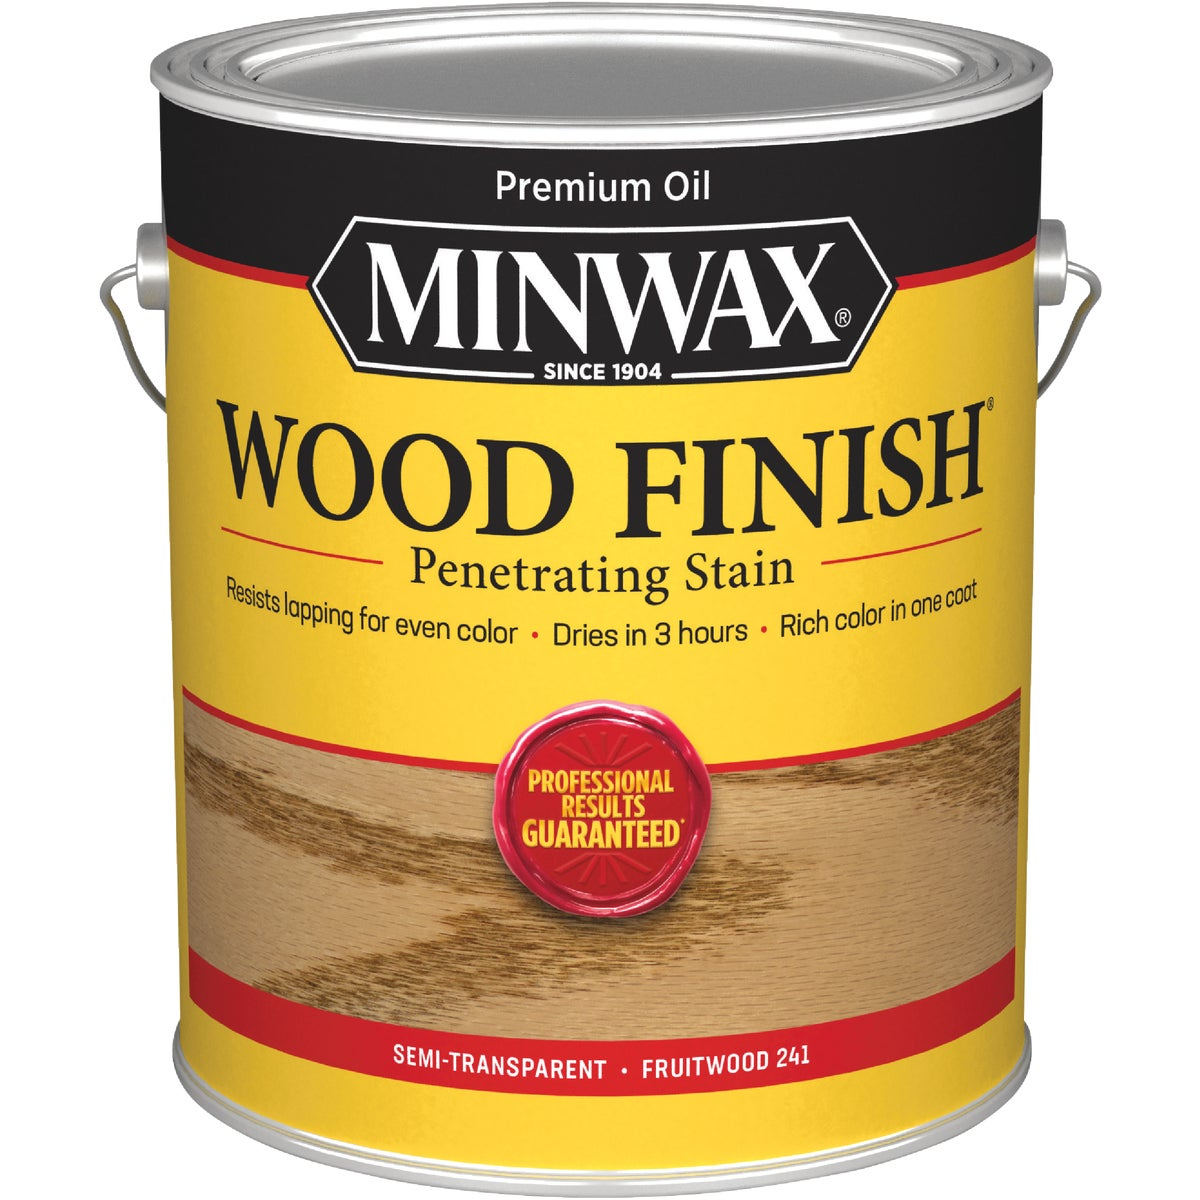 VOC FRUITWOOD WOOD STAIN - 710800000 by Minwax Company